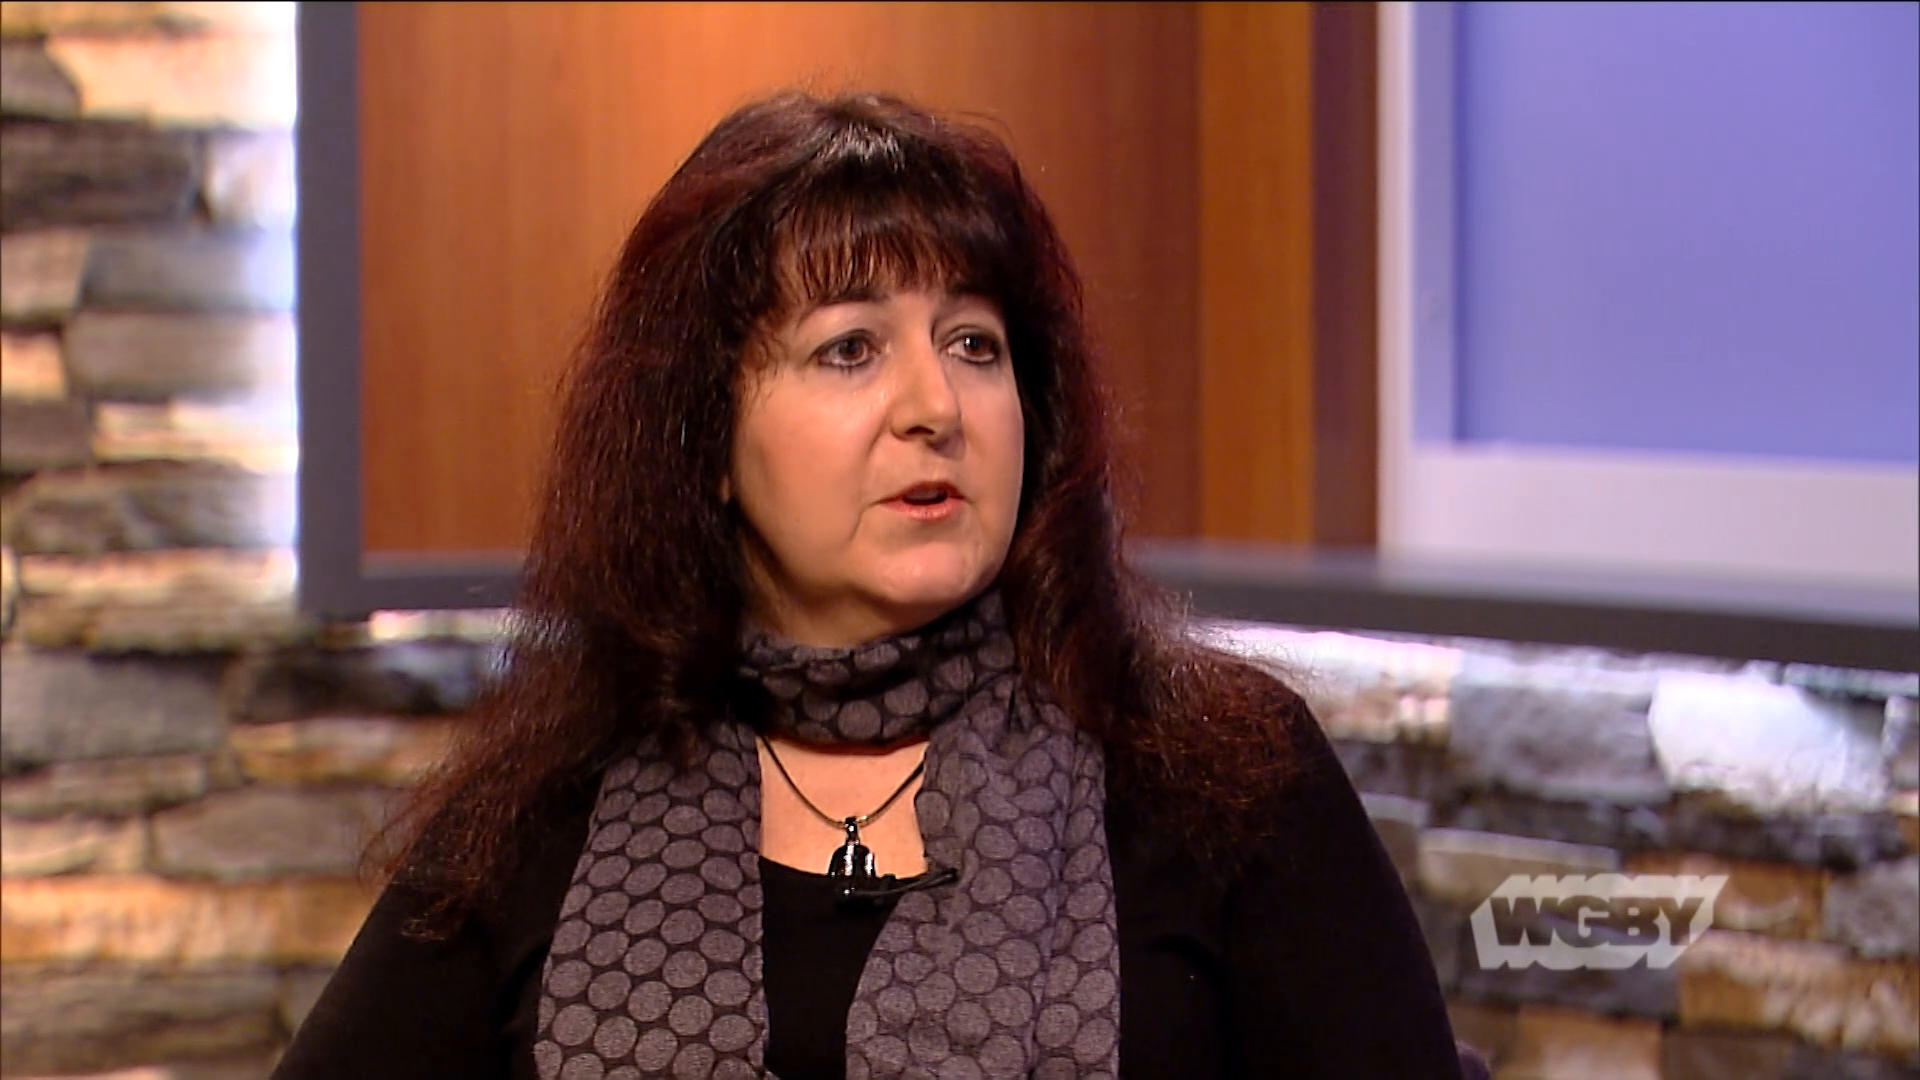 Greylock Federal Credit Union VP Cindy Shogry-Raimer discusses how her bank helped federal employees who missed paychecks during the government shutdown.